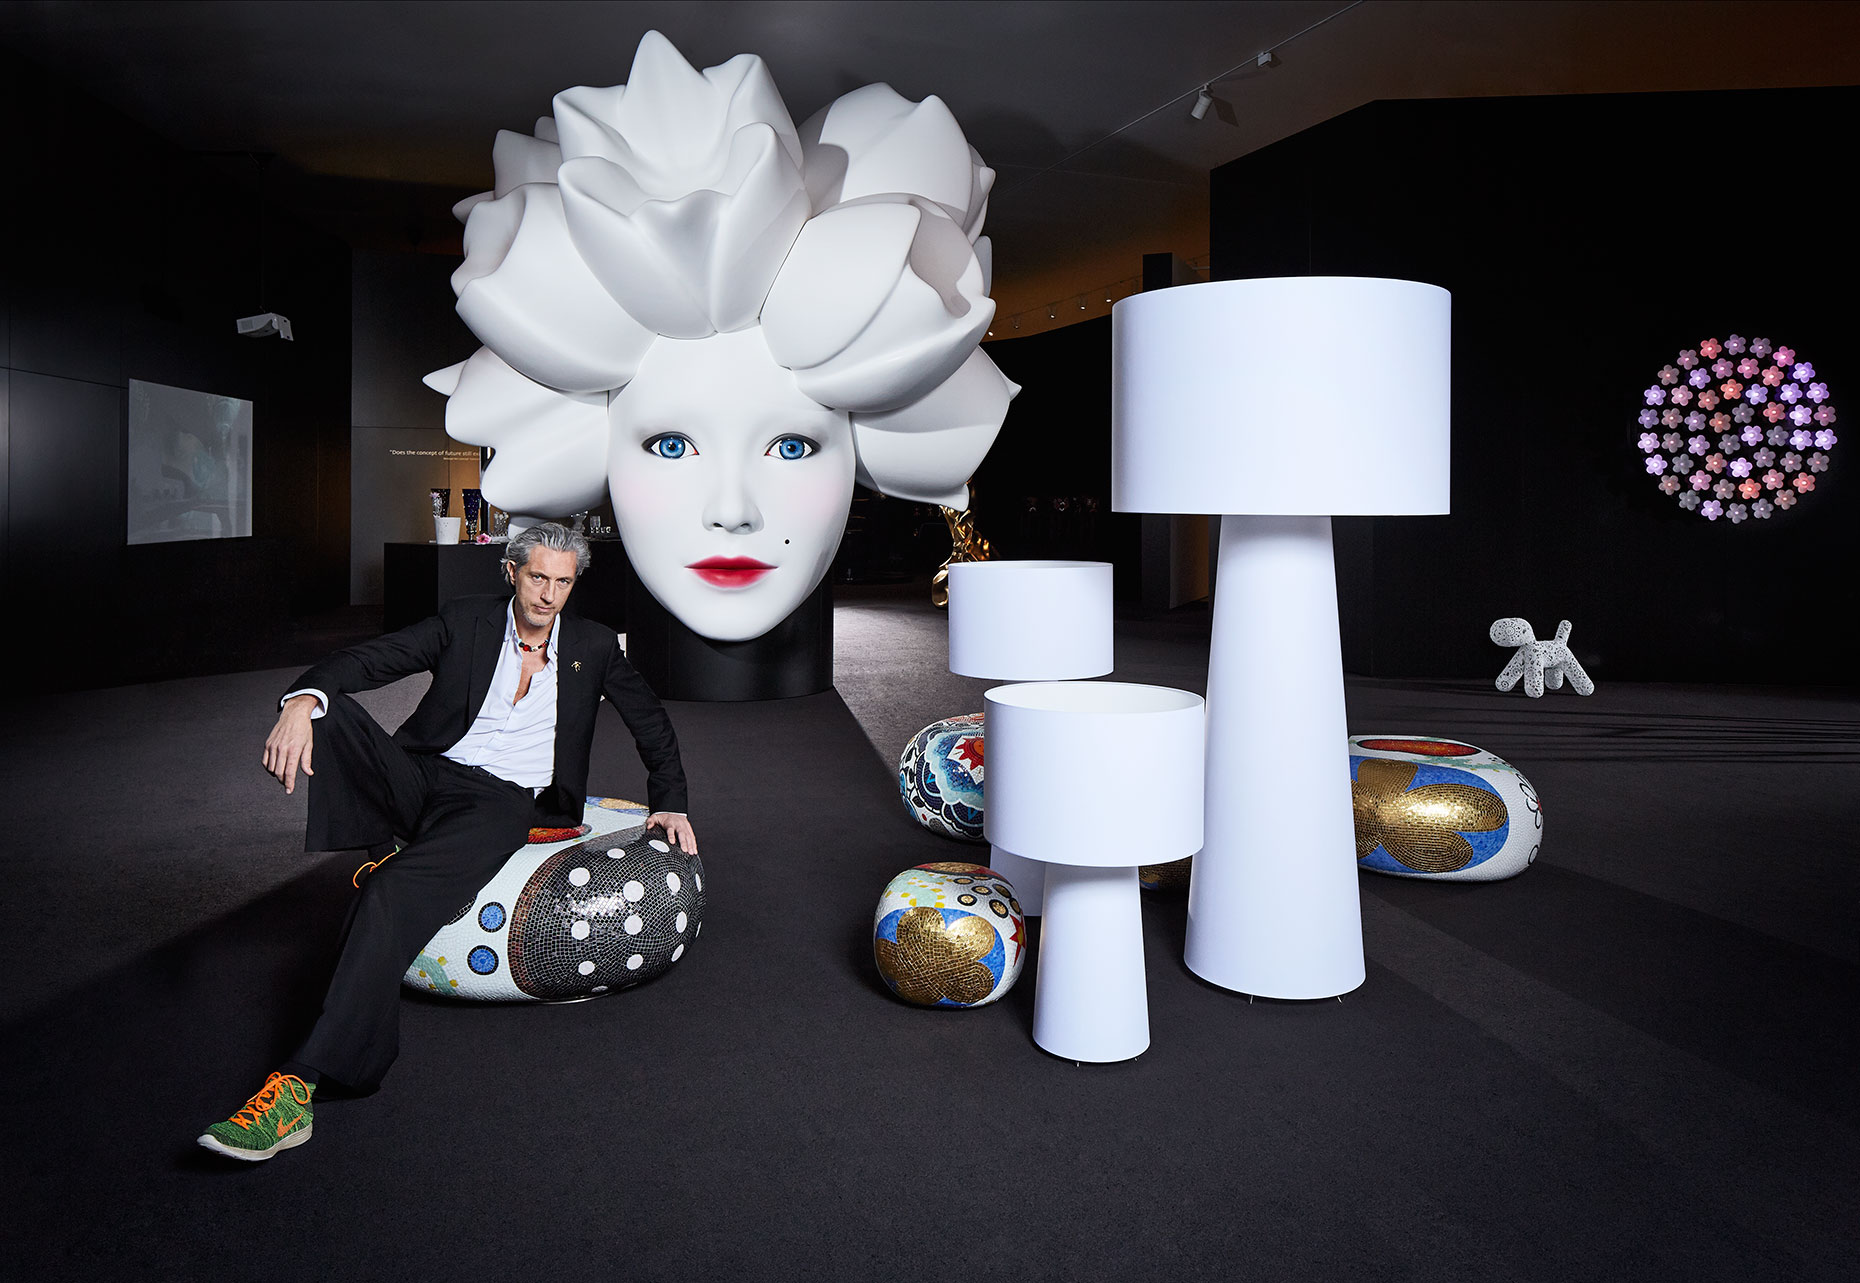 Dutch designer Marcel Wanders in his exhibition at the Stedelijk Museum Amsterdam, expositie